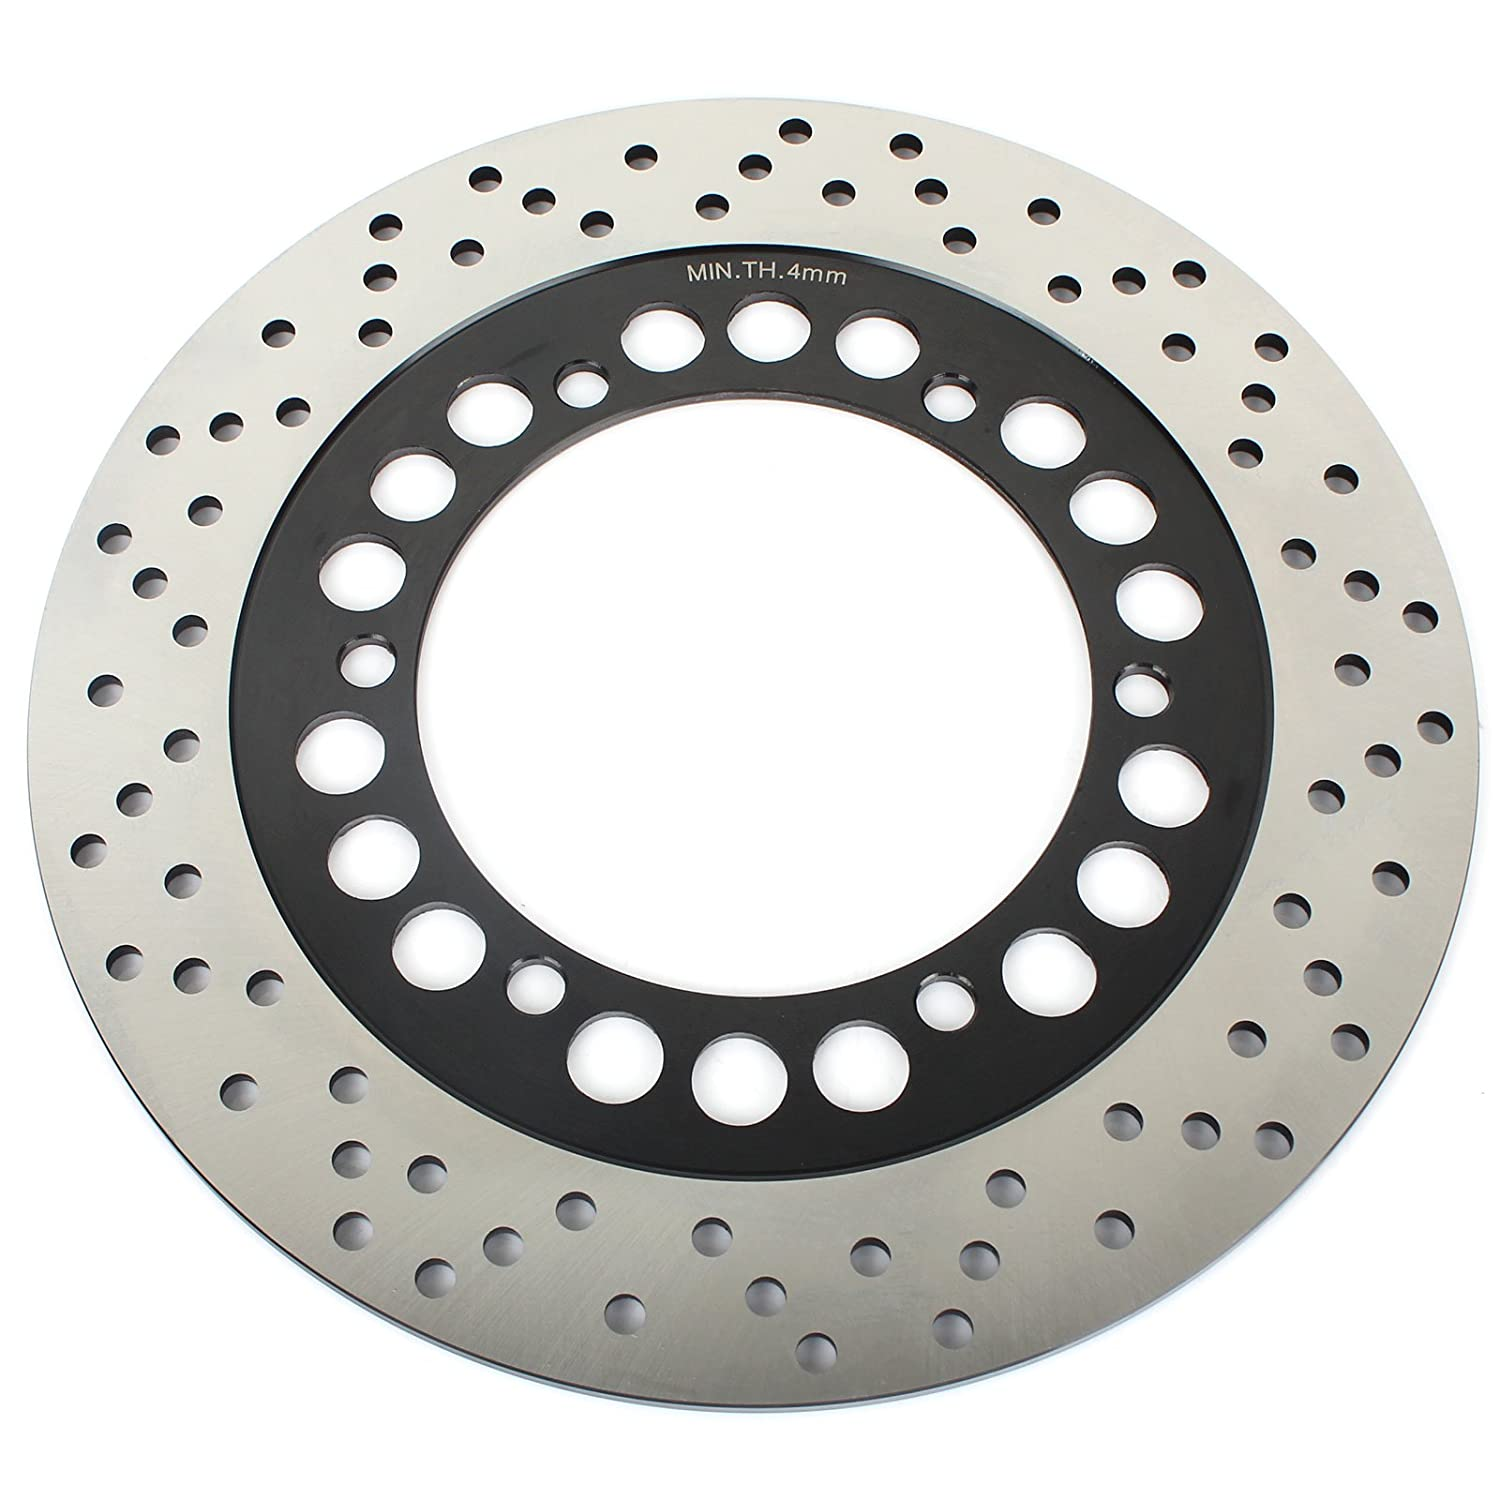 Amazon.com: TARAZON Front Brake Disc Rotor For Kawasaki EX ...